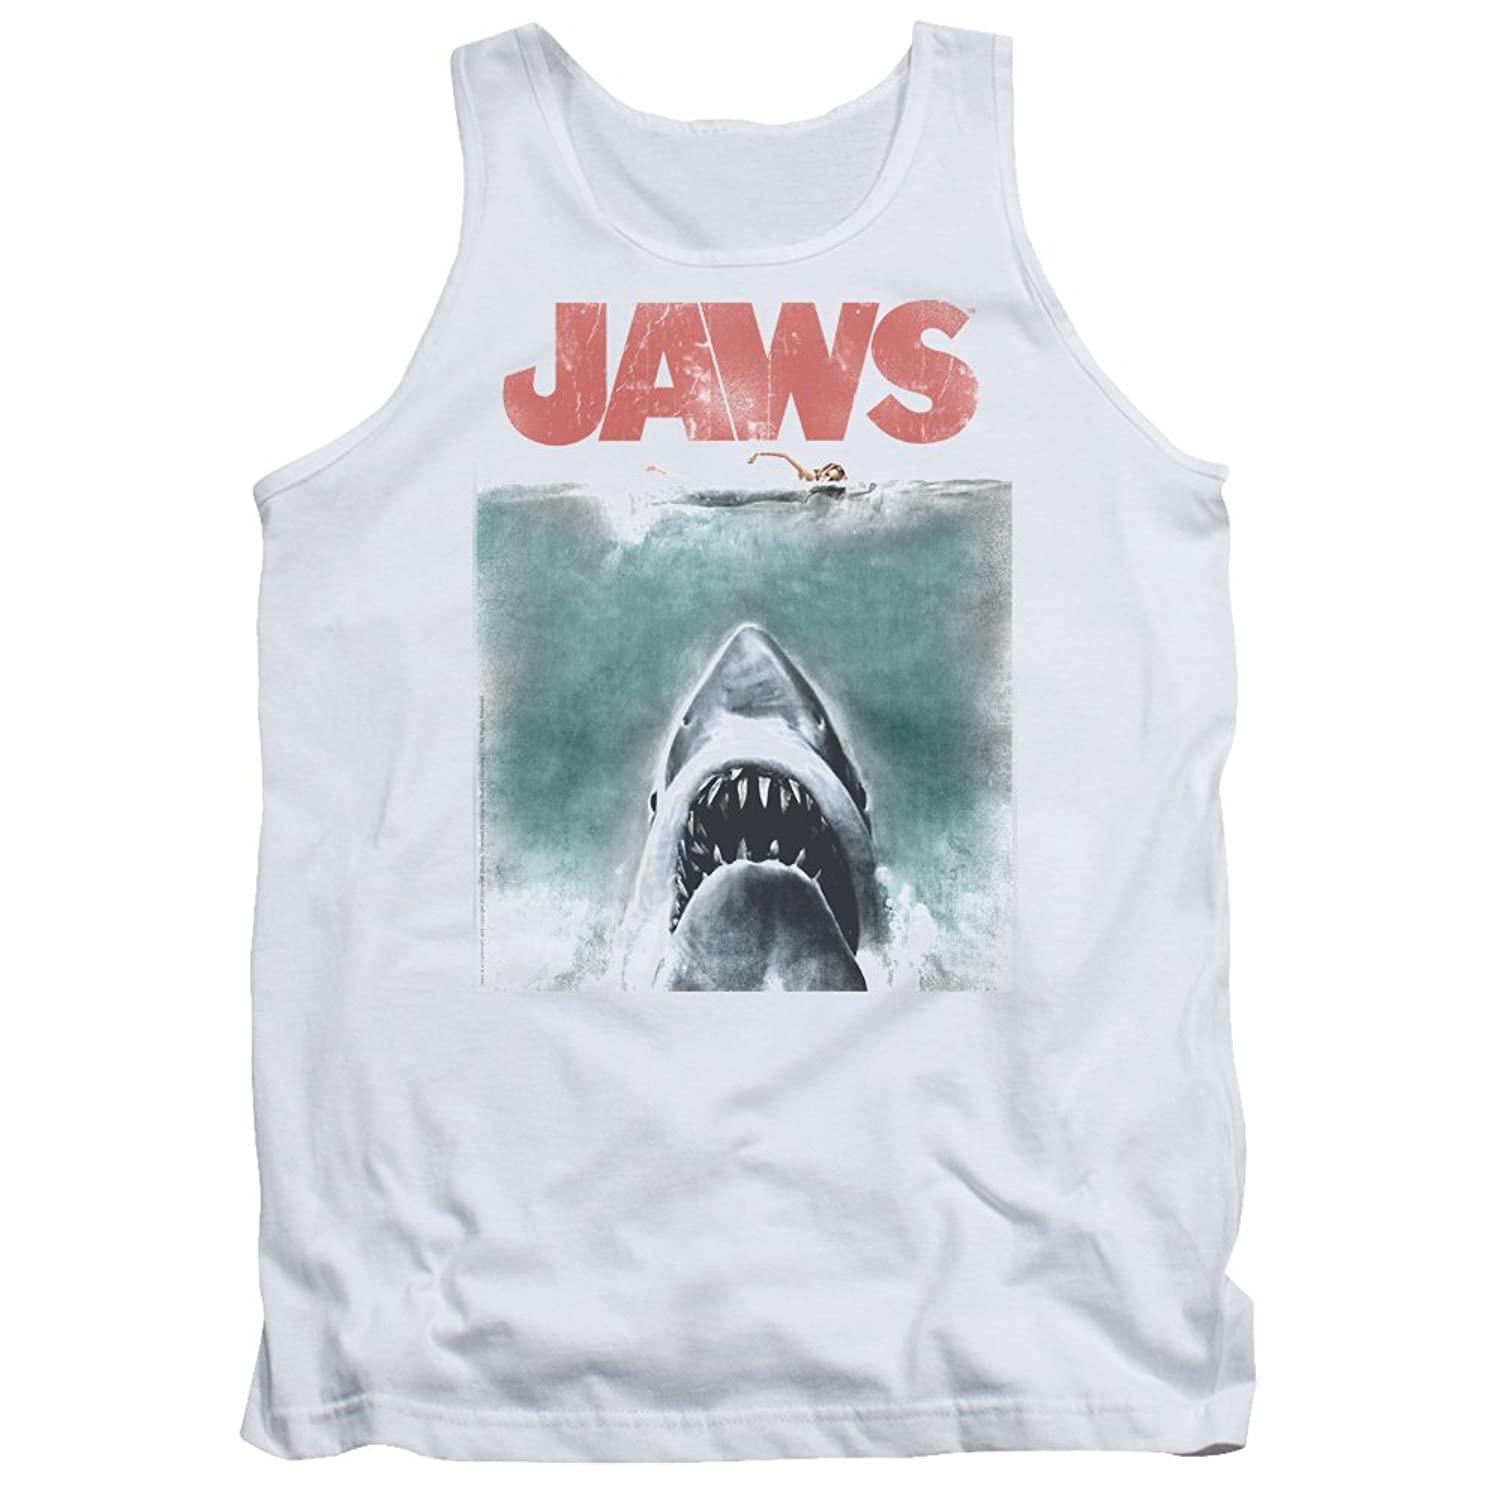 Jaws 1975 Shark Thriller Spielberg Movie Color Poster Adult Tank Top Shirt